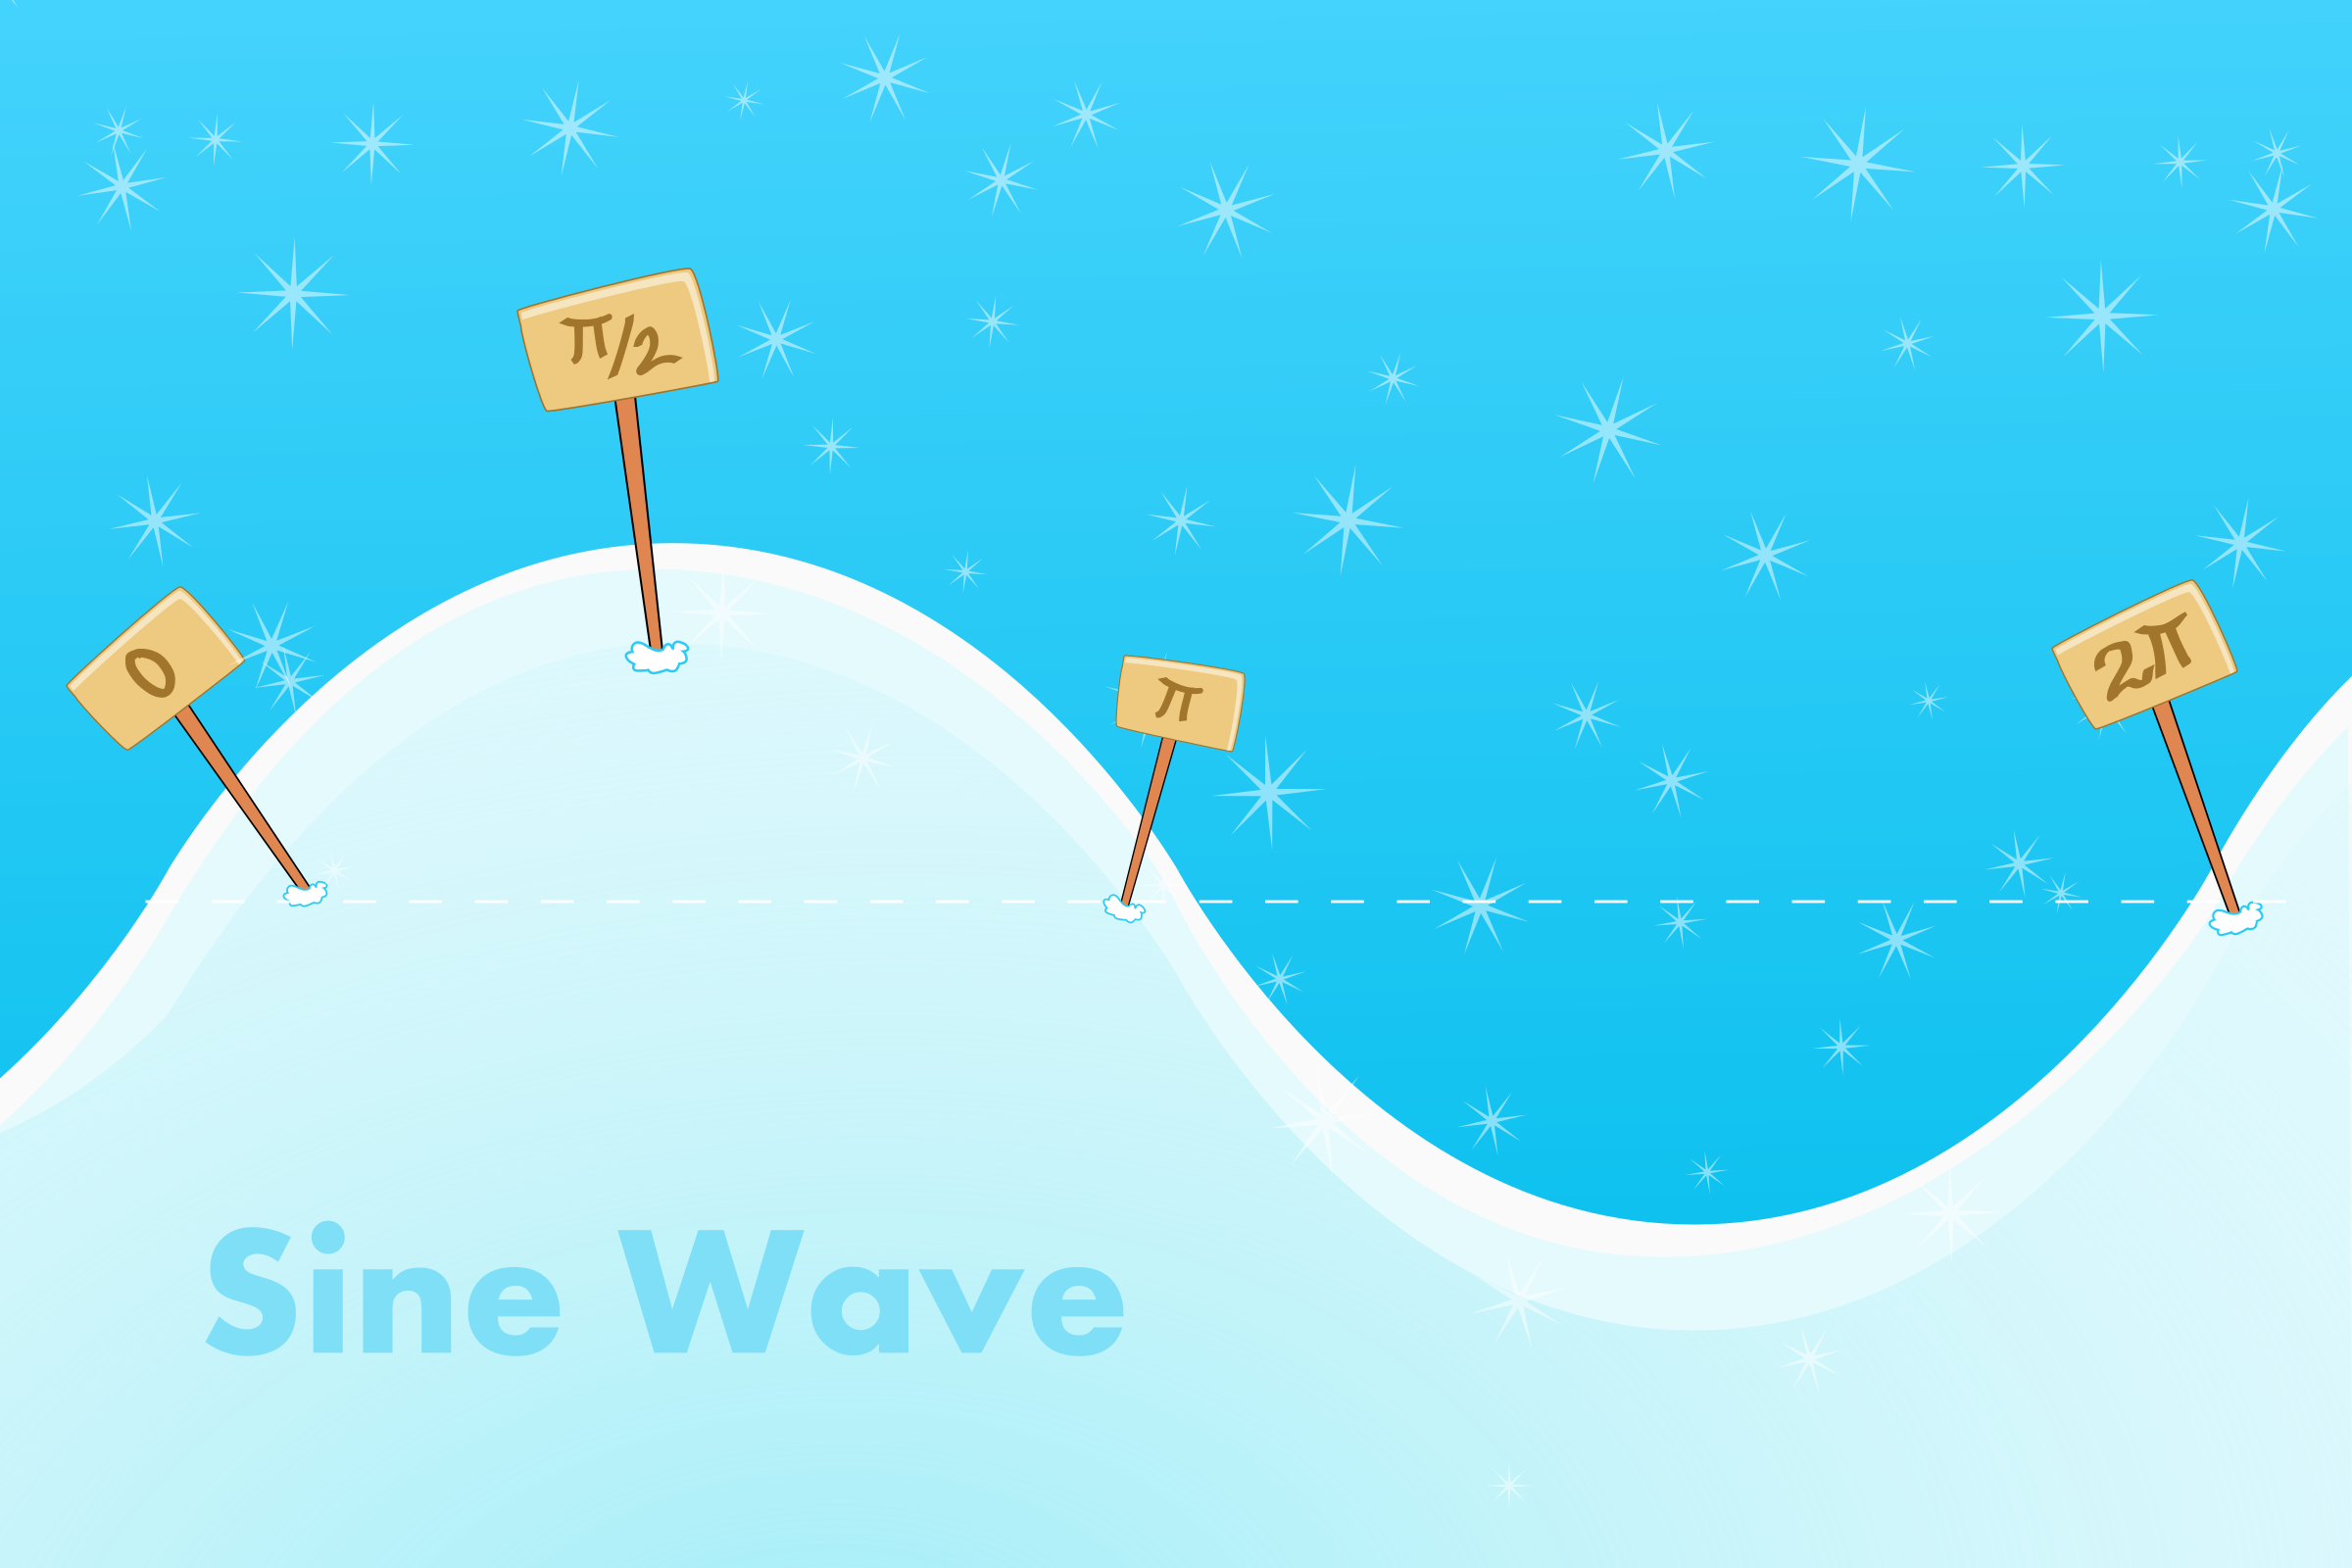 Snow illustration background sine wave educational poster by monsterbraingames